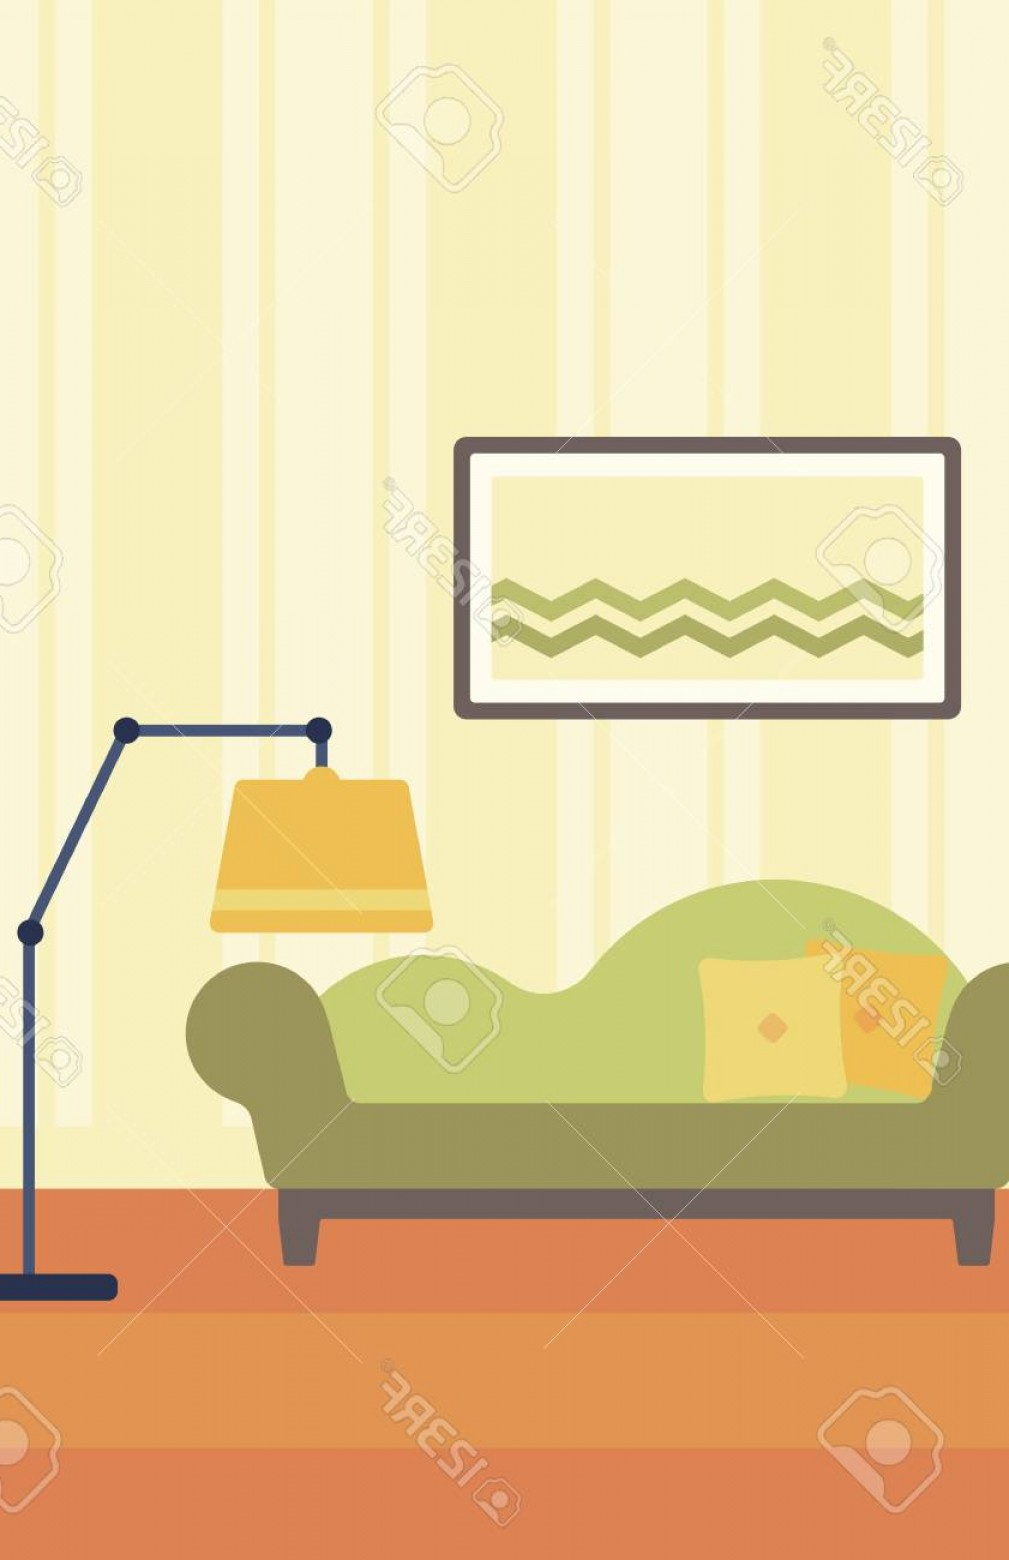 Vector Background For Living Room: Photostock Vector Background Of Living Room With Sofa And Picture On The Wall Vector Flat Design Illustration Vertical